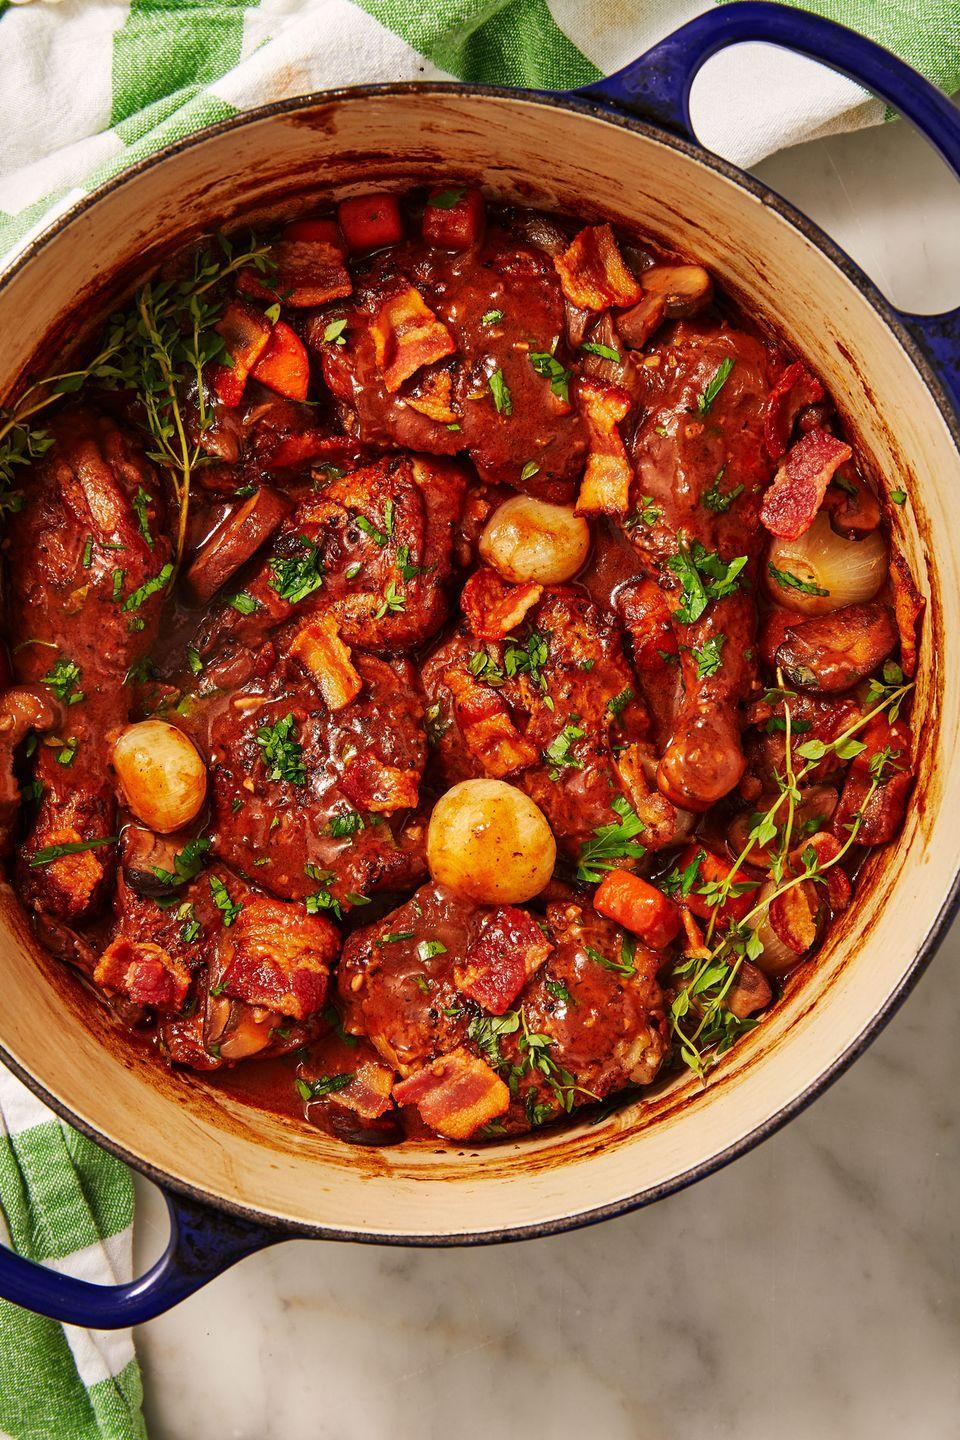 """<p>Don't be intimidated. Coq au vin is essentially just chicken stew. The wine, butter, and bacon will make your bag of frozen carrots and pearl onions taste extra fancy. </p><p>Get the recipe from <a href=""""https://www.delish.com/cooking/recipe-ideas/a30875984/coq-au-vin-recipe/"""" rel=""""nofollow noopener"""" target=""""_blank"""" data-ylk=""""slk:Delish"""" class=""""link rapid-noclick-resp"""">Delish</a>.</p>"""